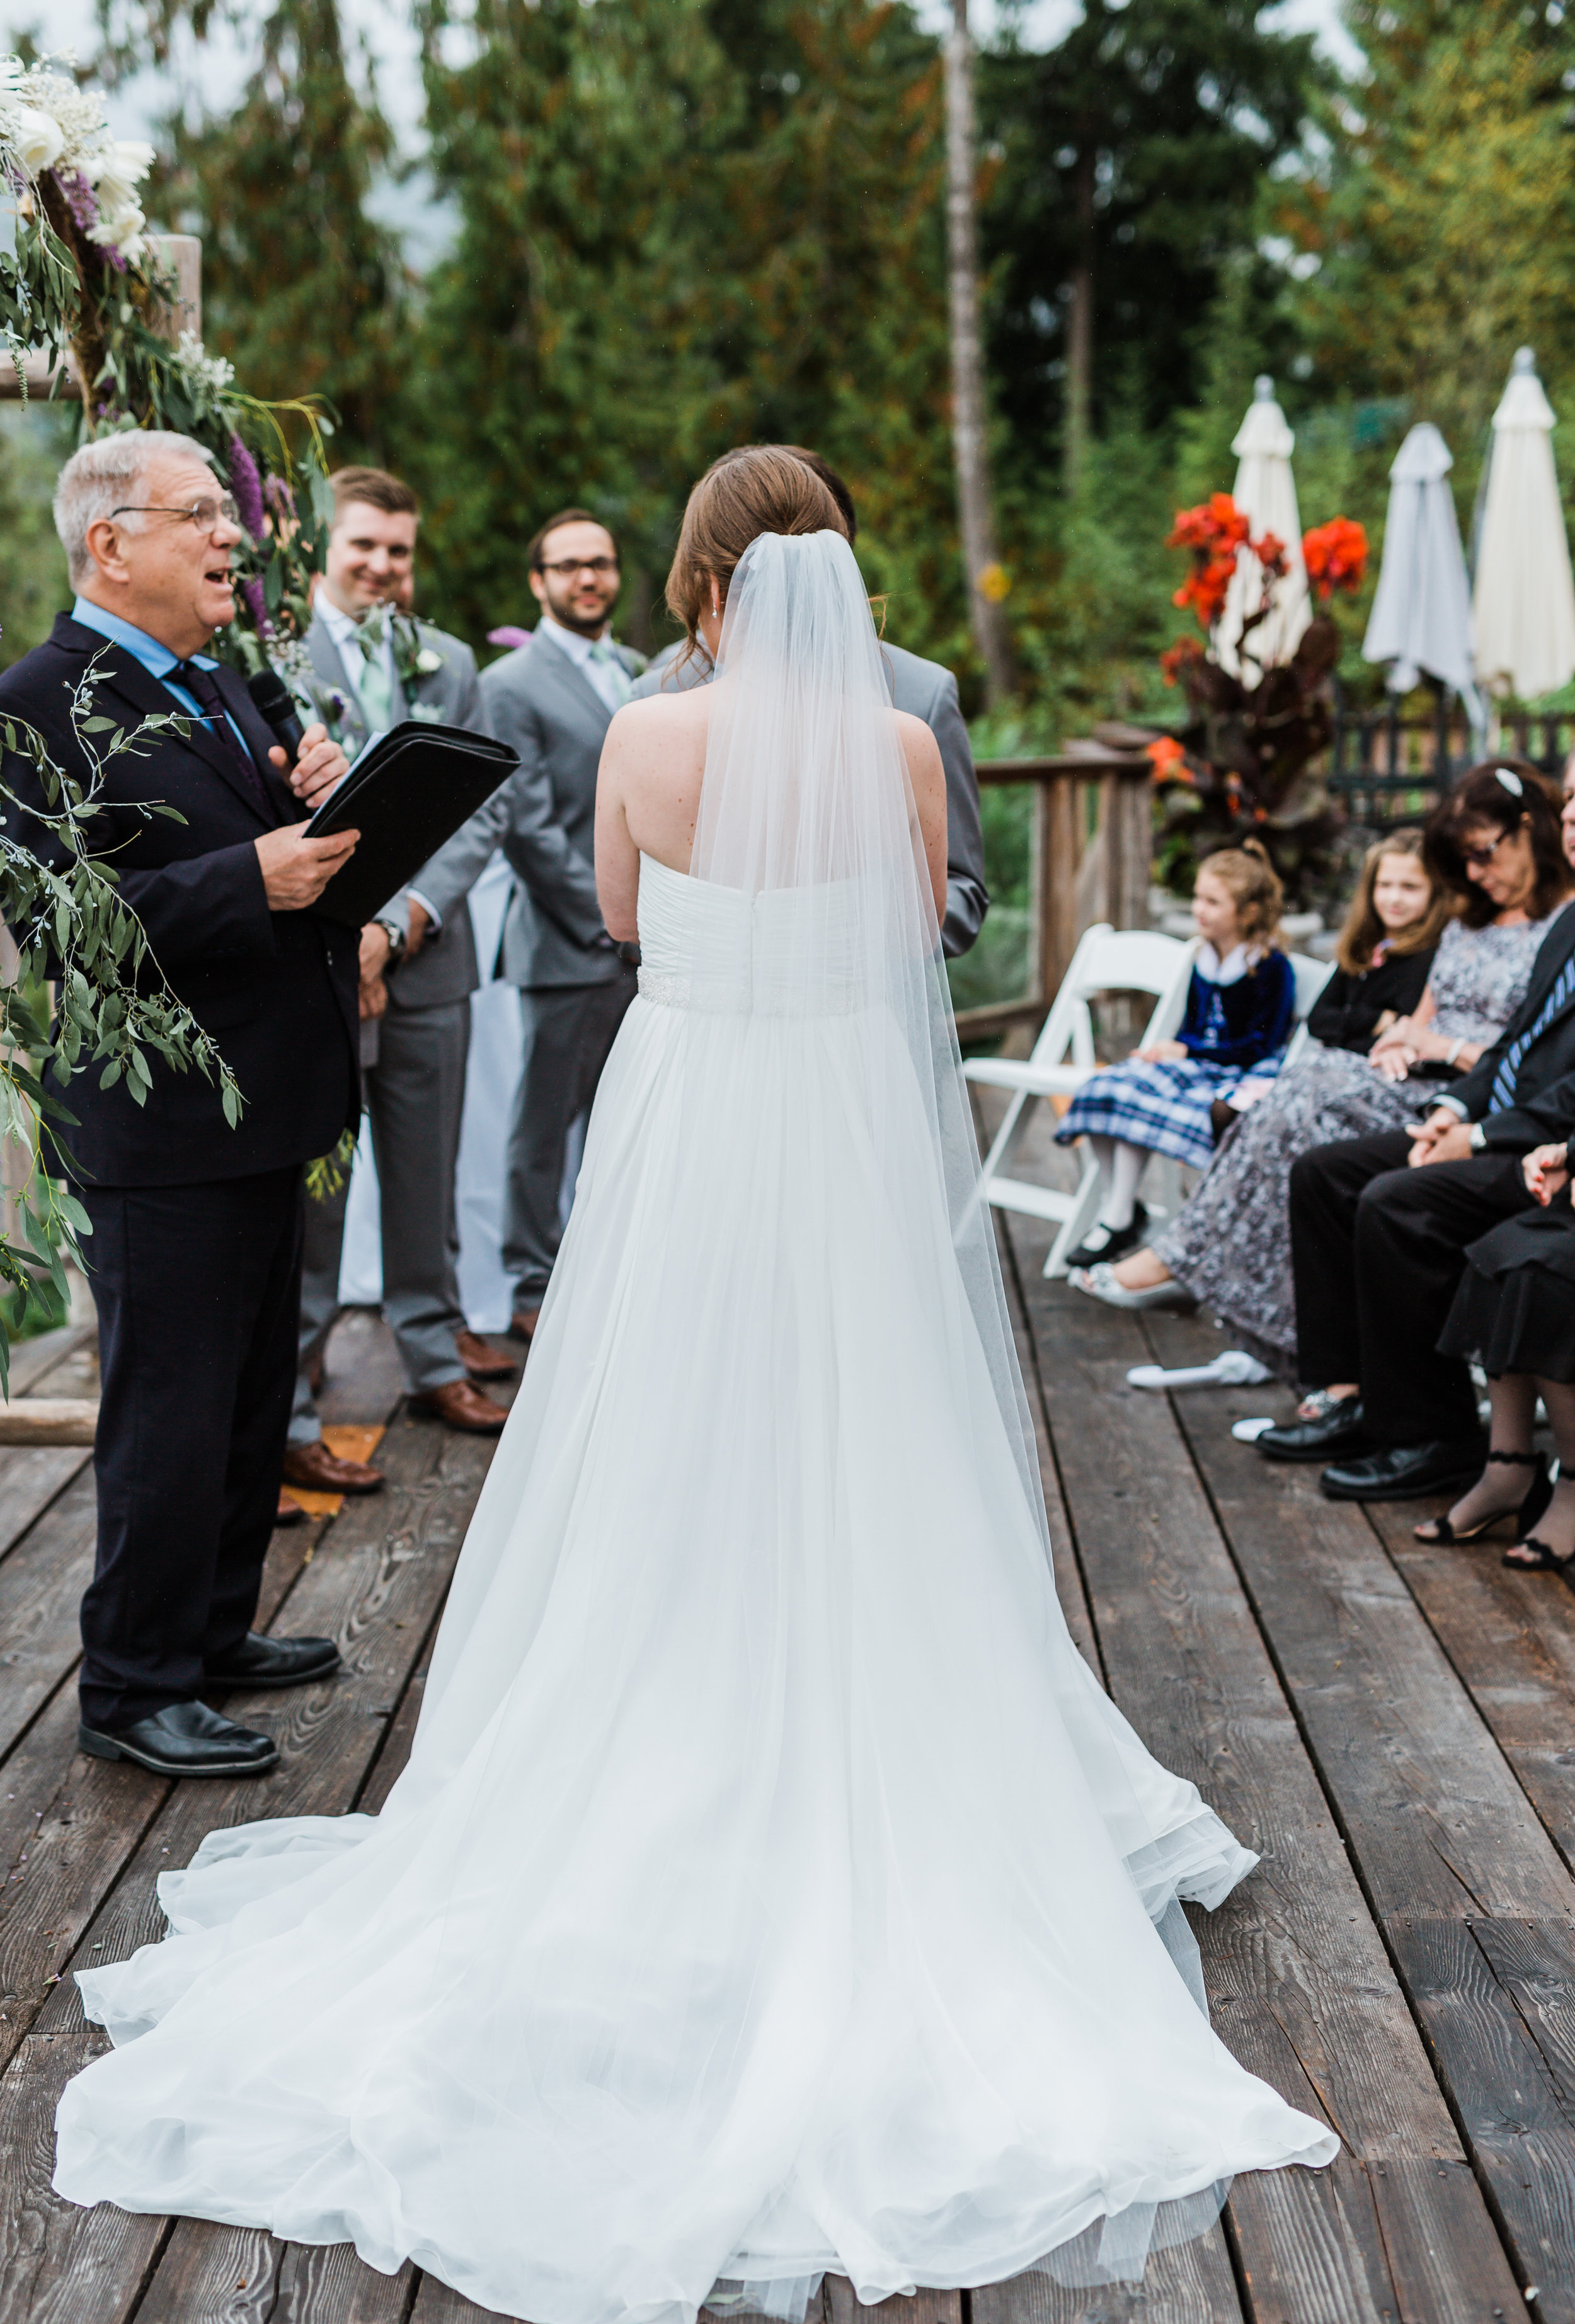 West Coast Wilderness Lodge Wedding Photos - Vancouver Wedding Photographer & Videographer - Sunshine Coast Wedding Photos - Sunshine Coast Wedding Photographer - Jennifer Picard Photography - IMG_4665.jpg